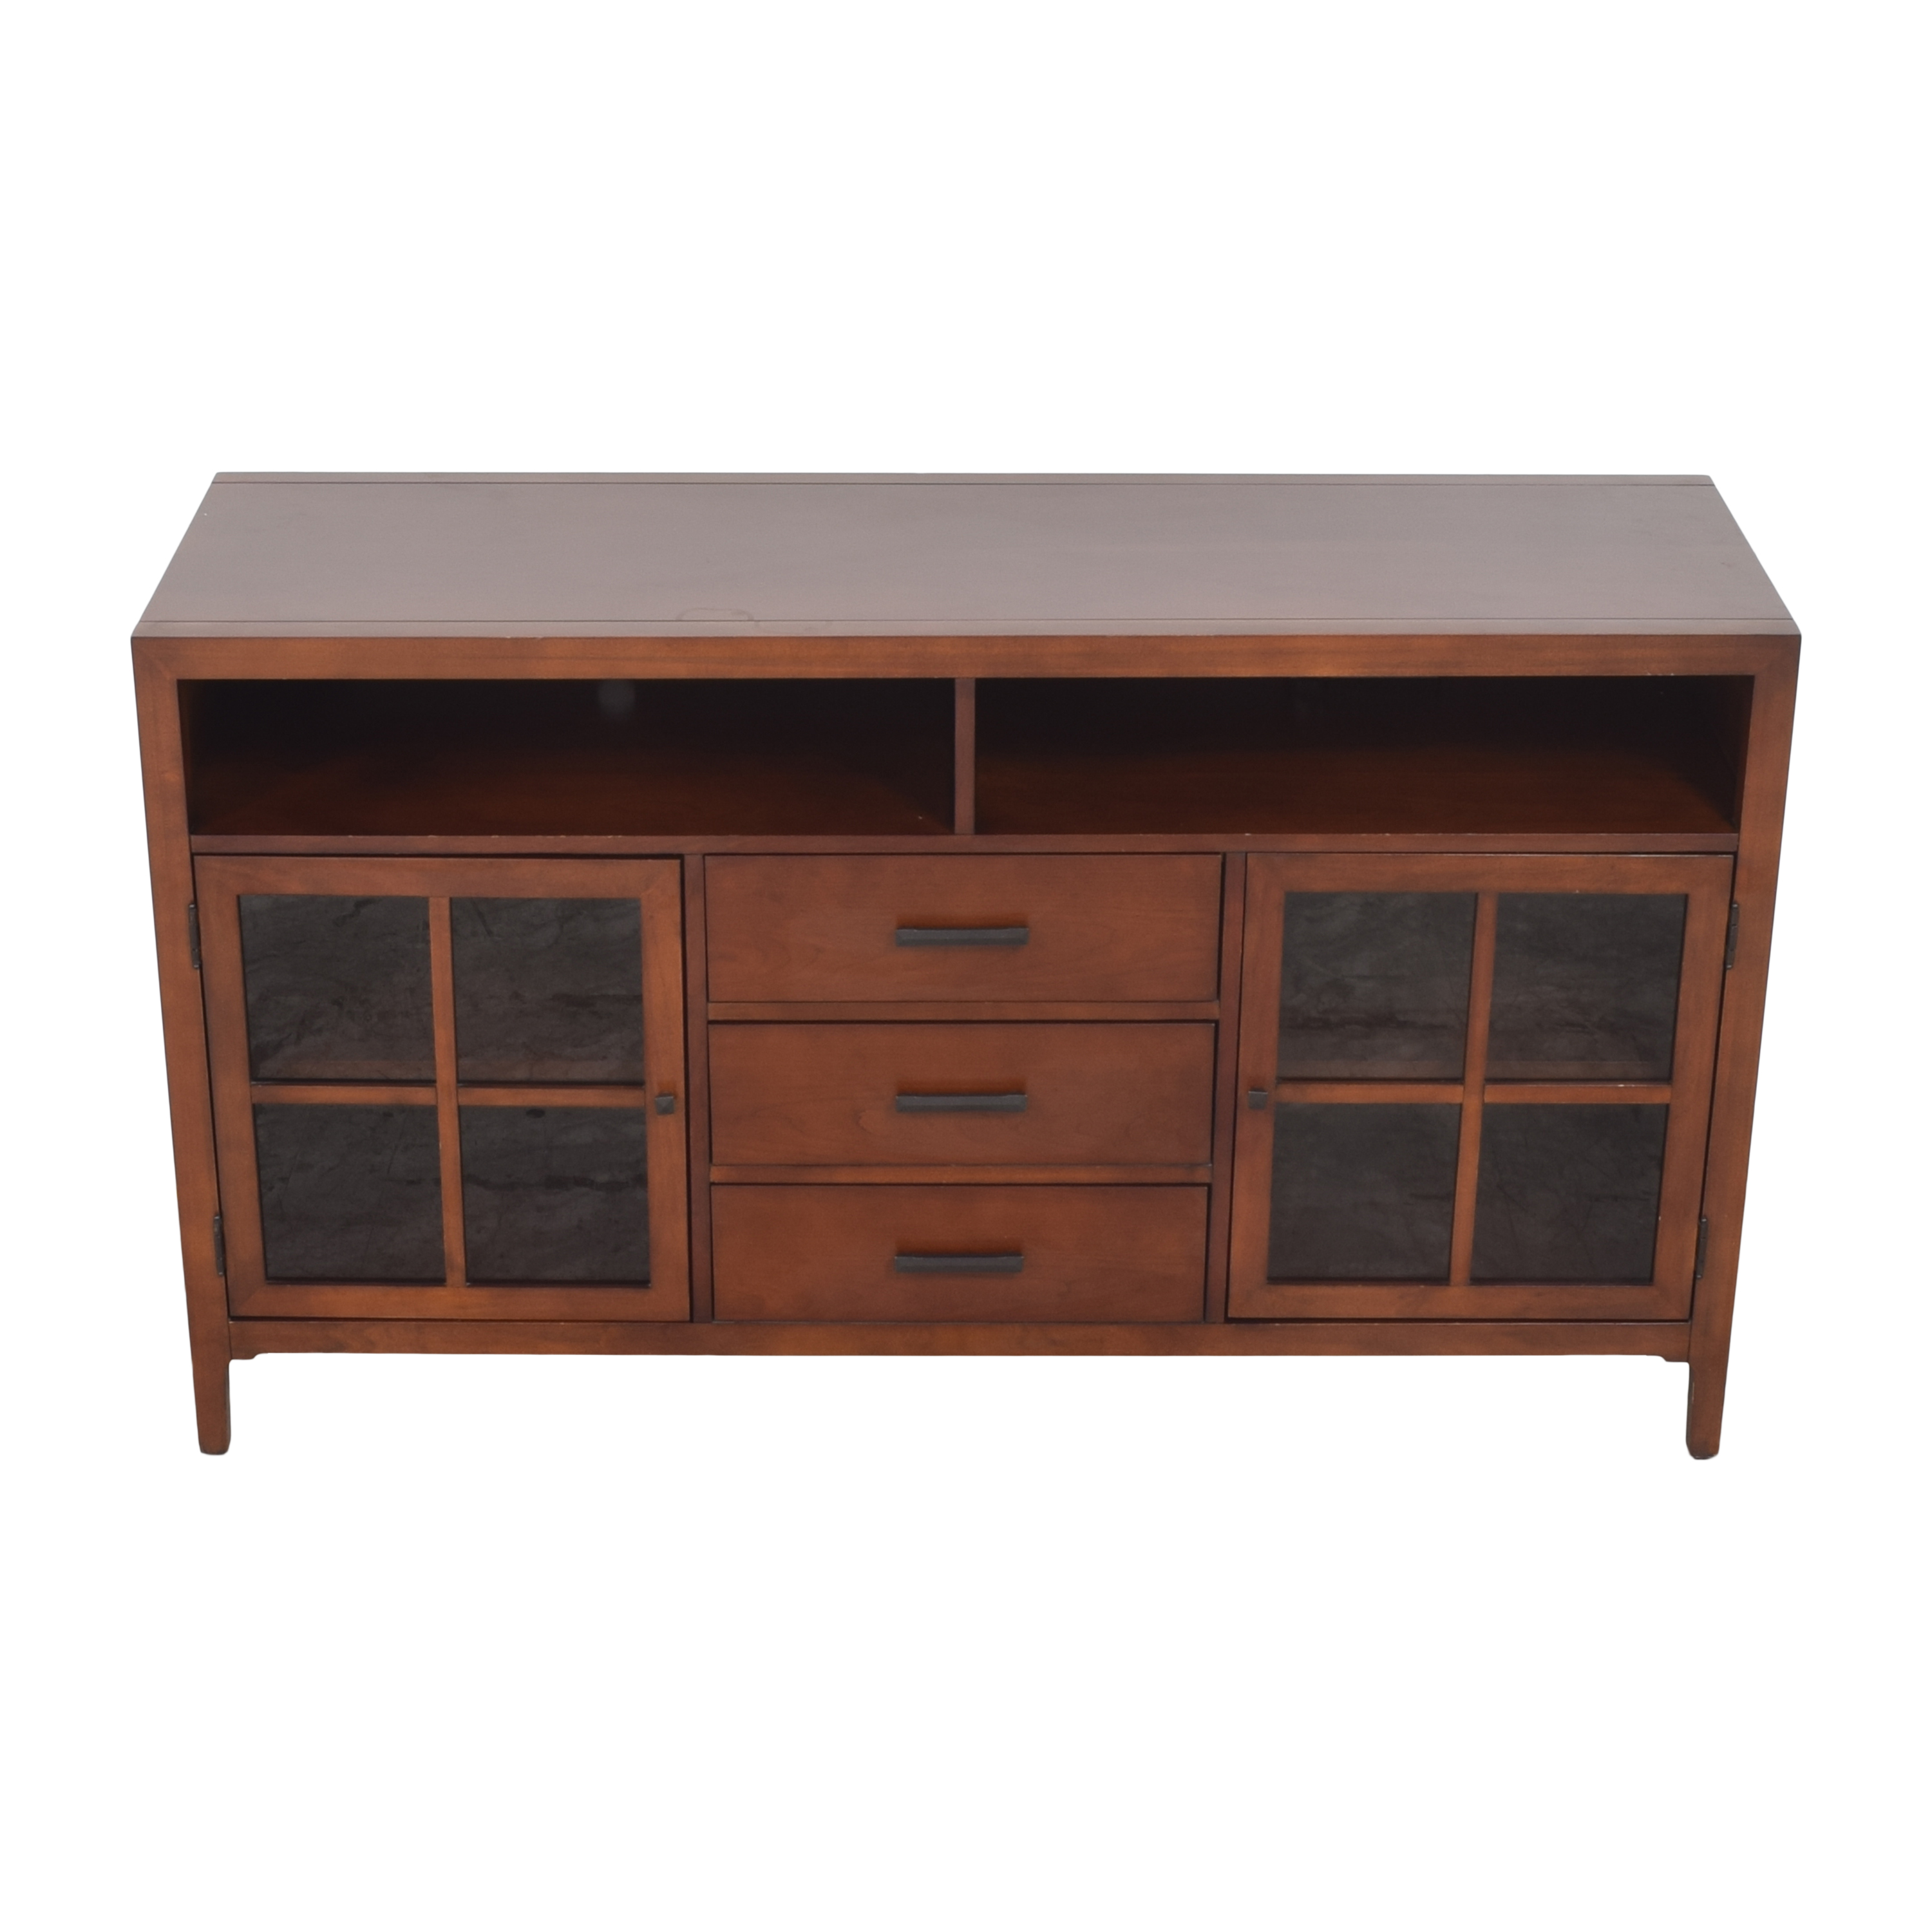 Raymour & Flanigan Raymour & Flanigan Entertainment Console by Bernhardt Storage